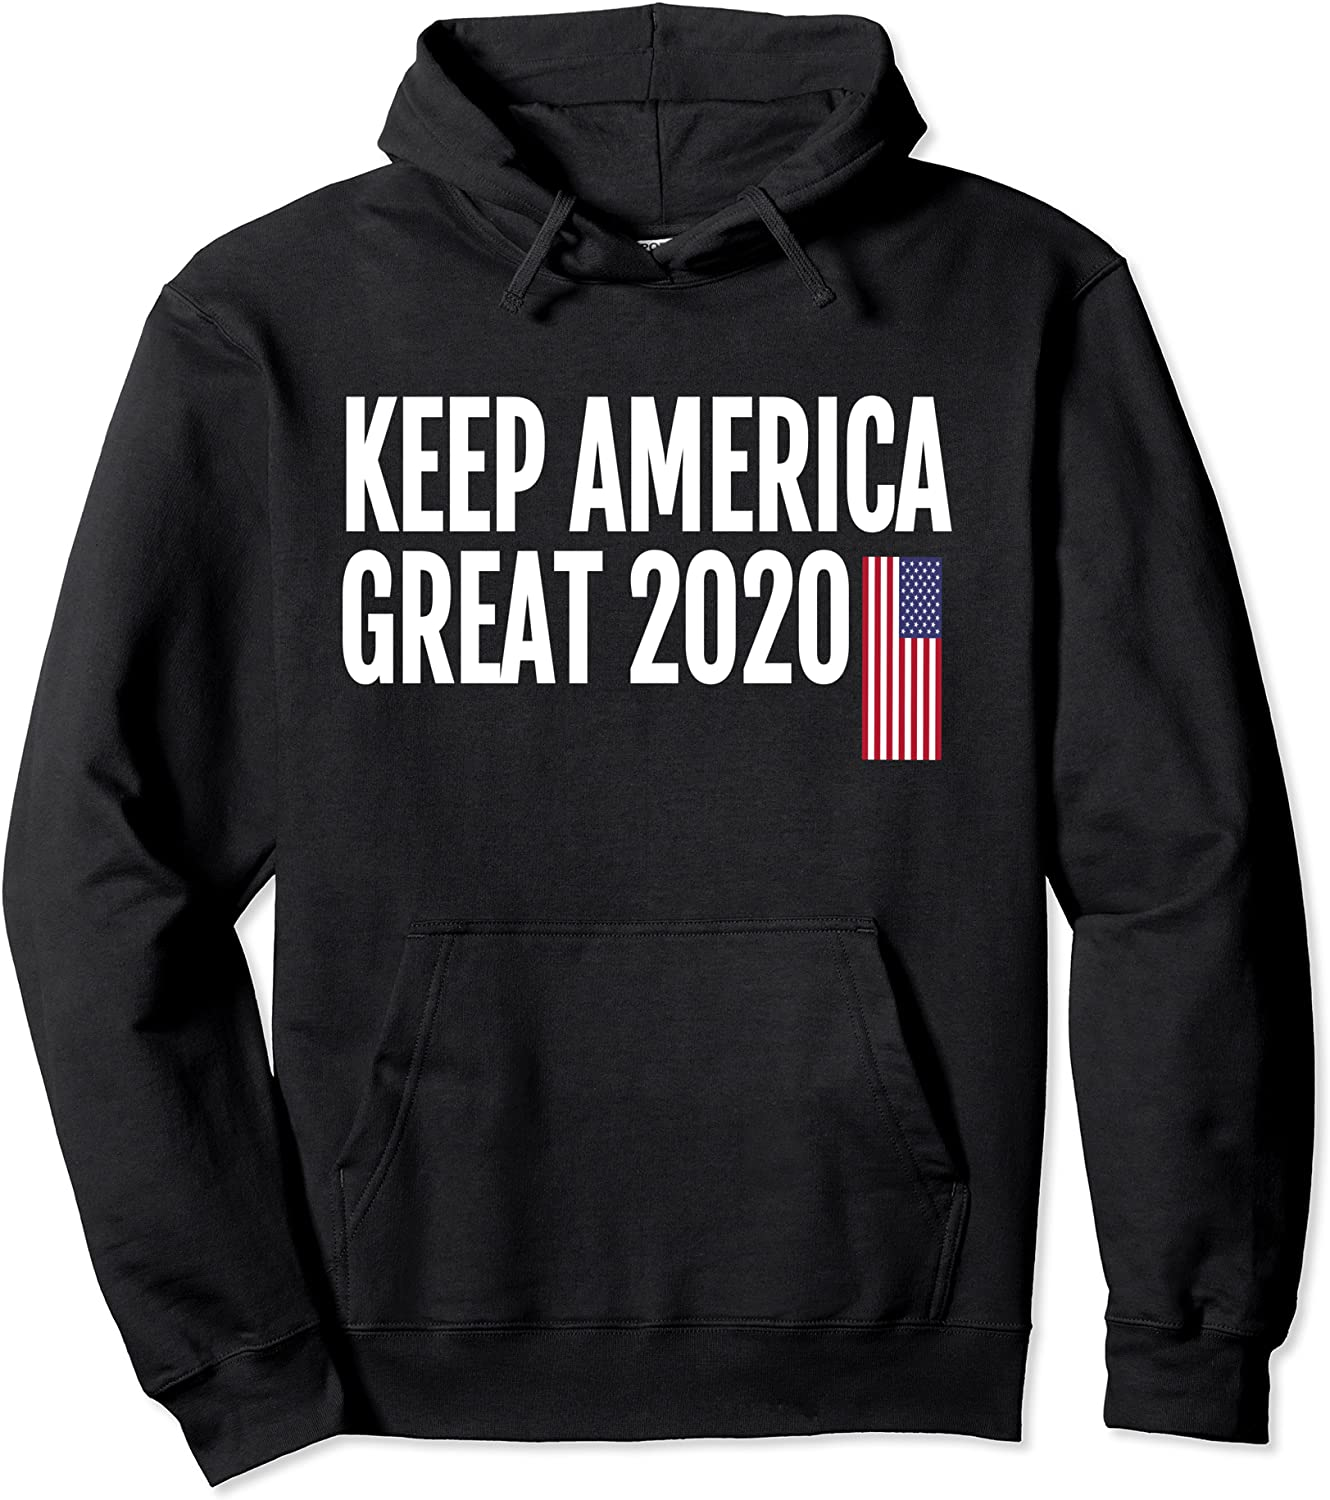 KEEP List price AMERICA GREAT TRUMP Election Direct stock discount 2020 Hoodie Pullover